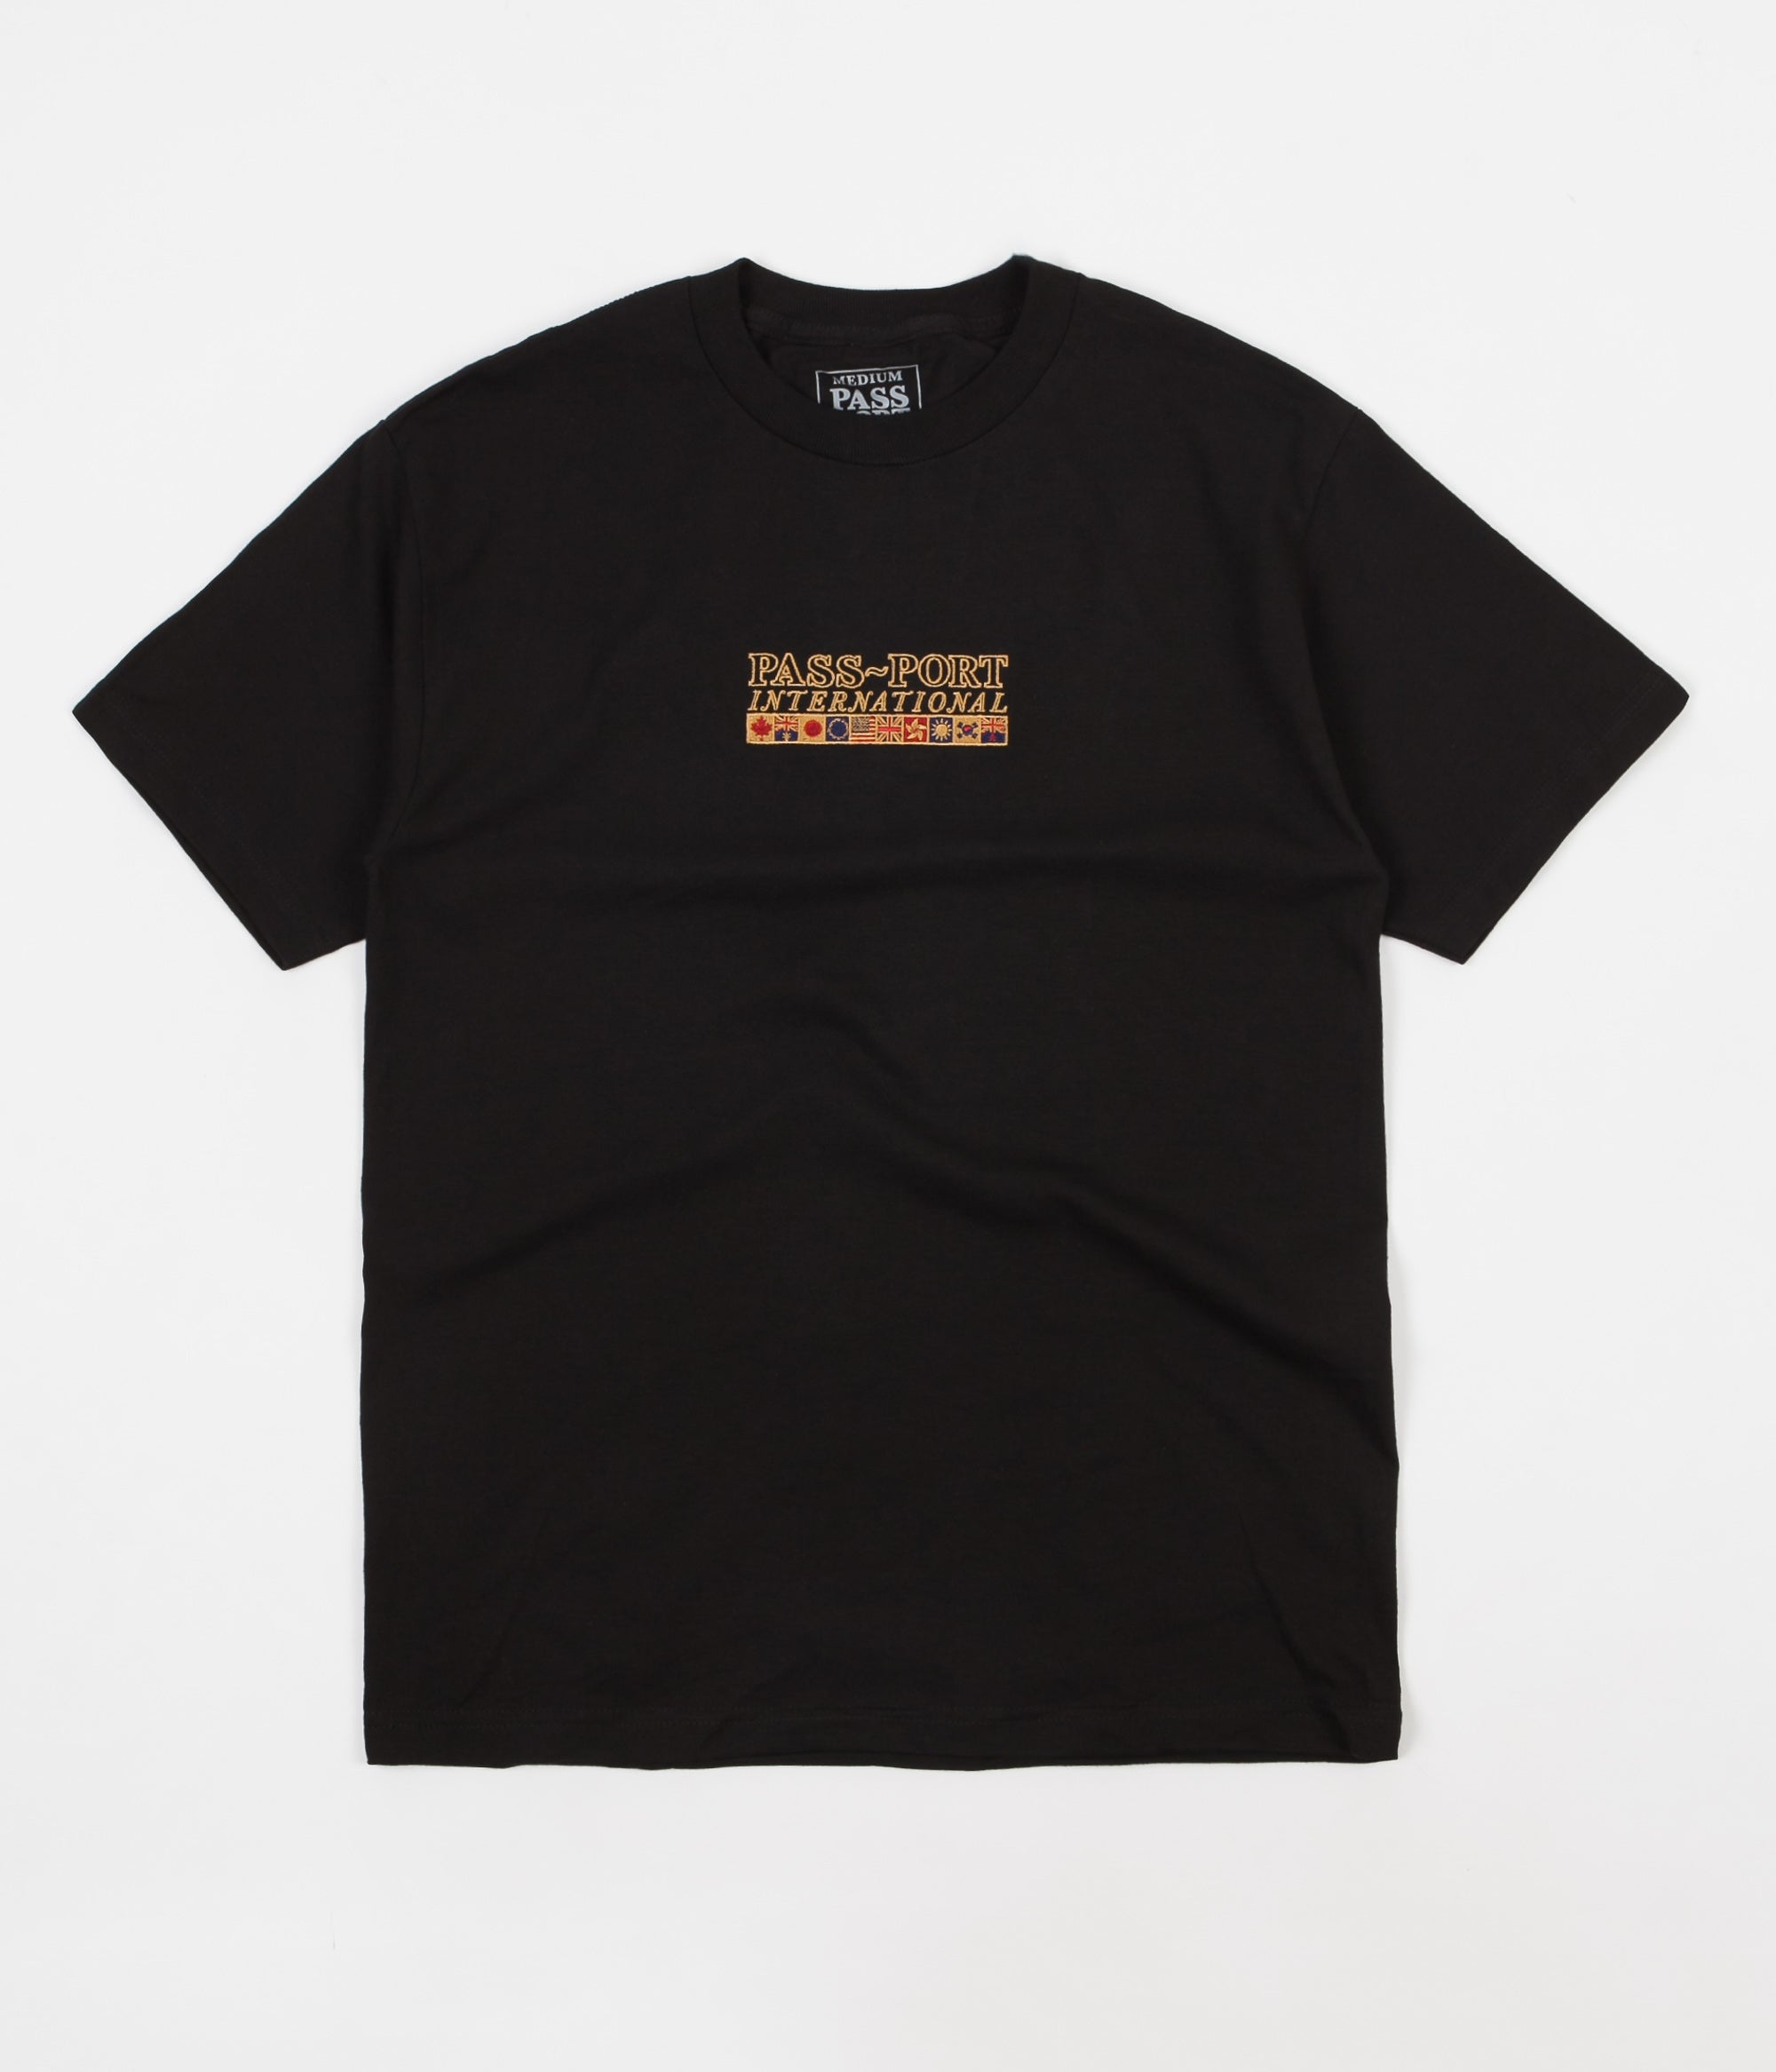 Pass Port International Embroidery T-Shirt - Black